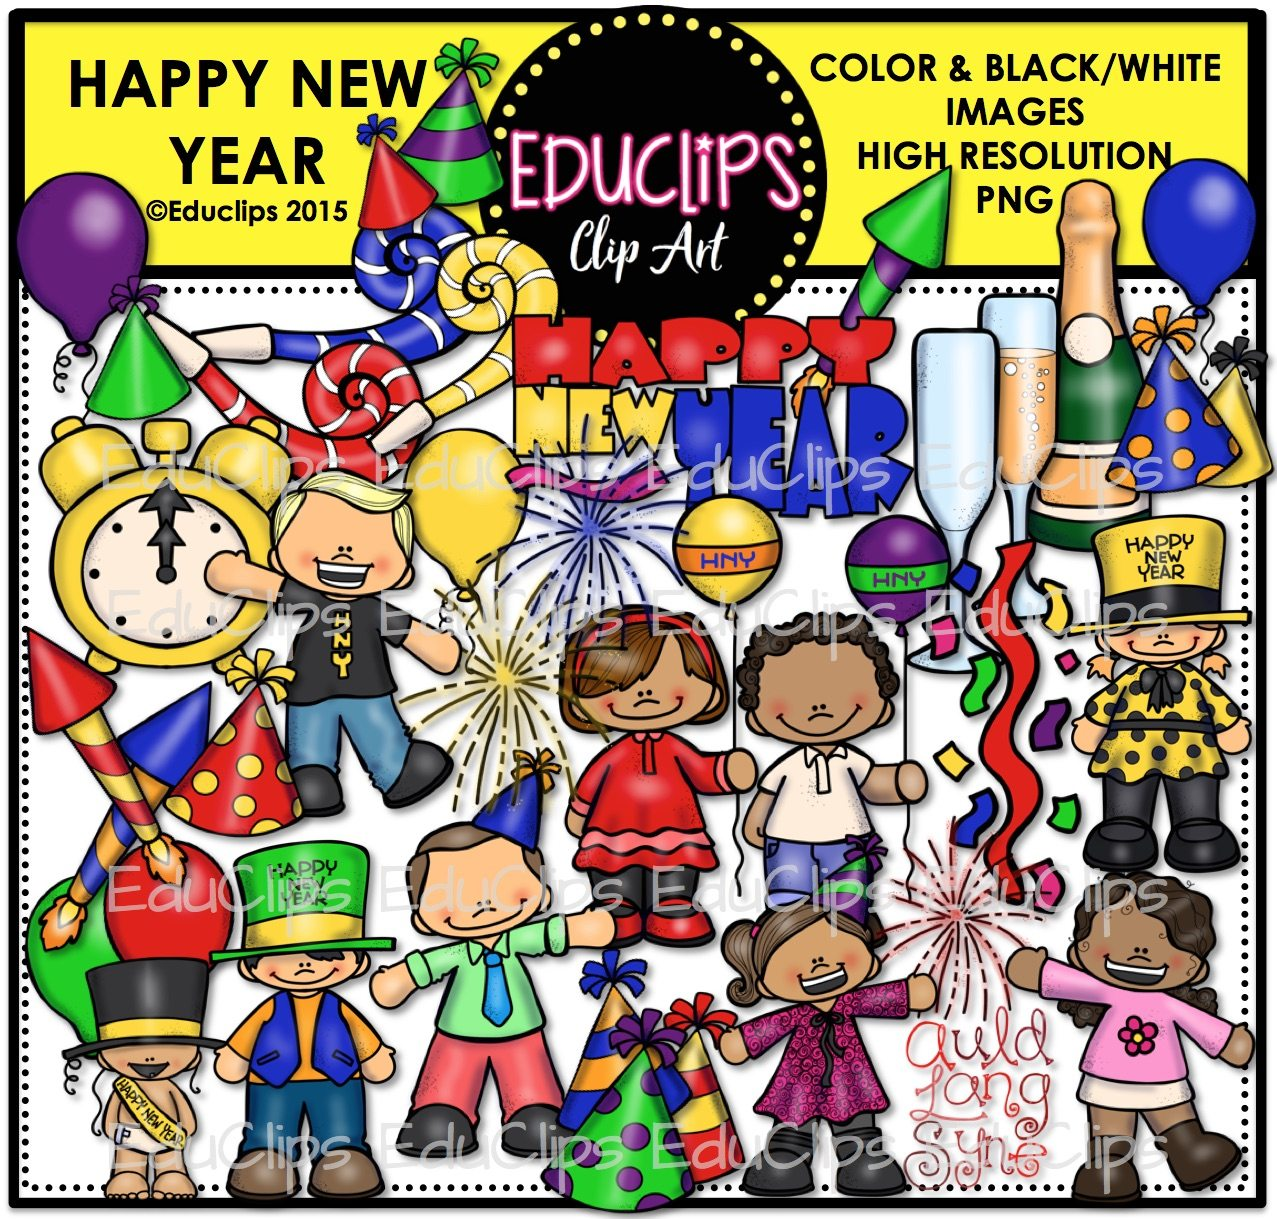 Happy New Year Clip Art Bundle (Color and B&W) - Edu Clips